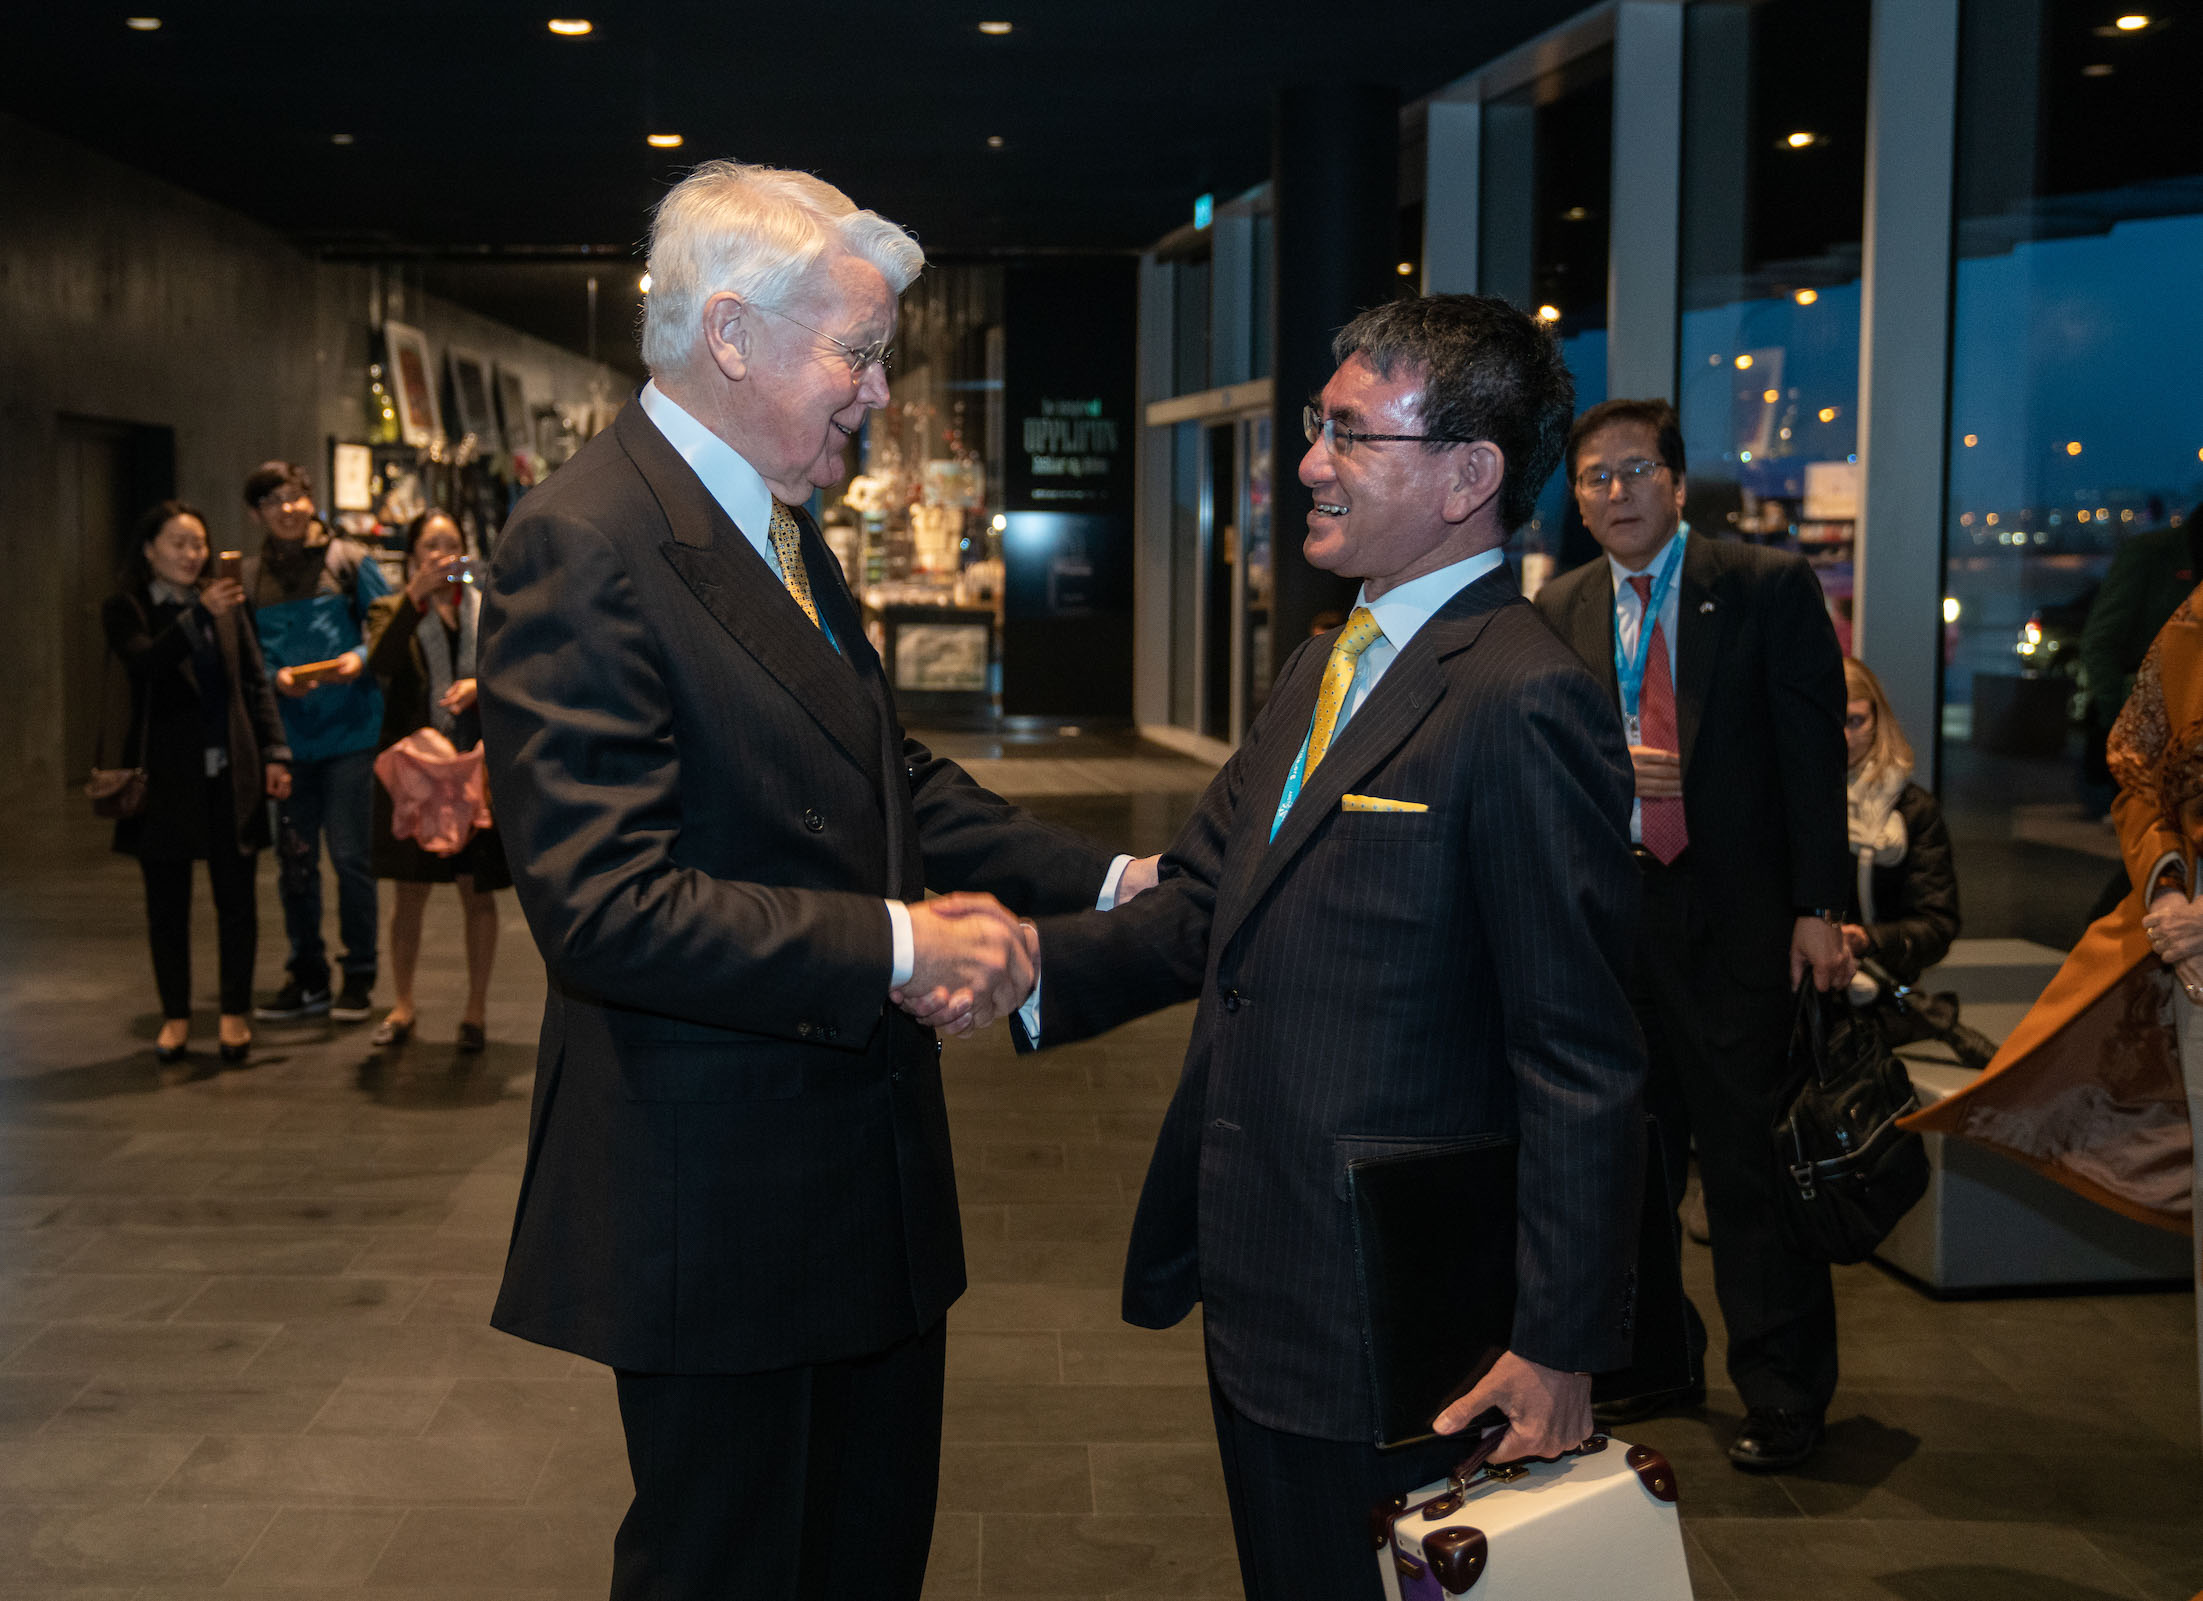 Mr. Grímsson greeting Japan's Minister of Foreign Affairs, Mr. Taro Kono on arrival to the 2018 Arctic Circle Assembly. JONAA©Óli Haukur Myrdal